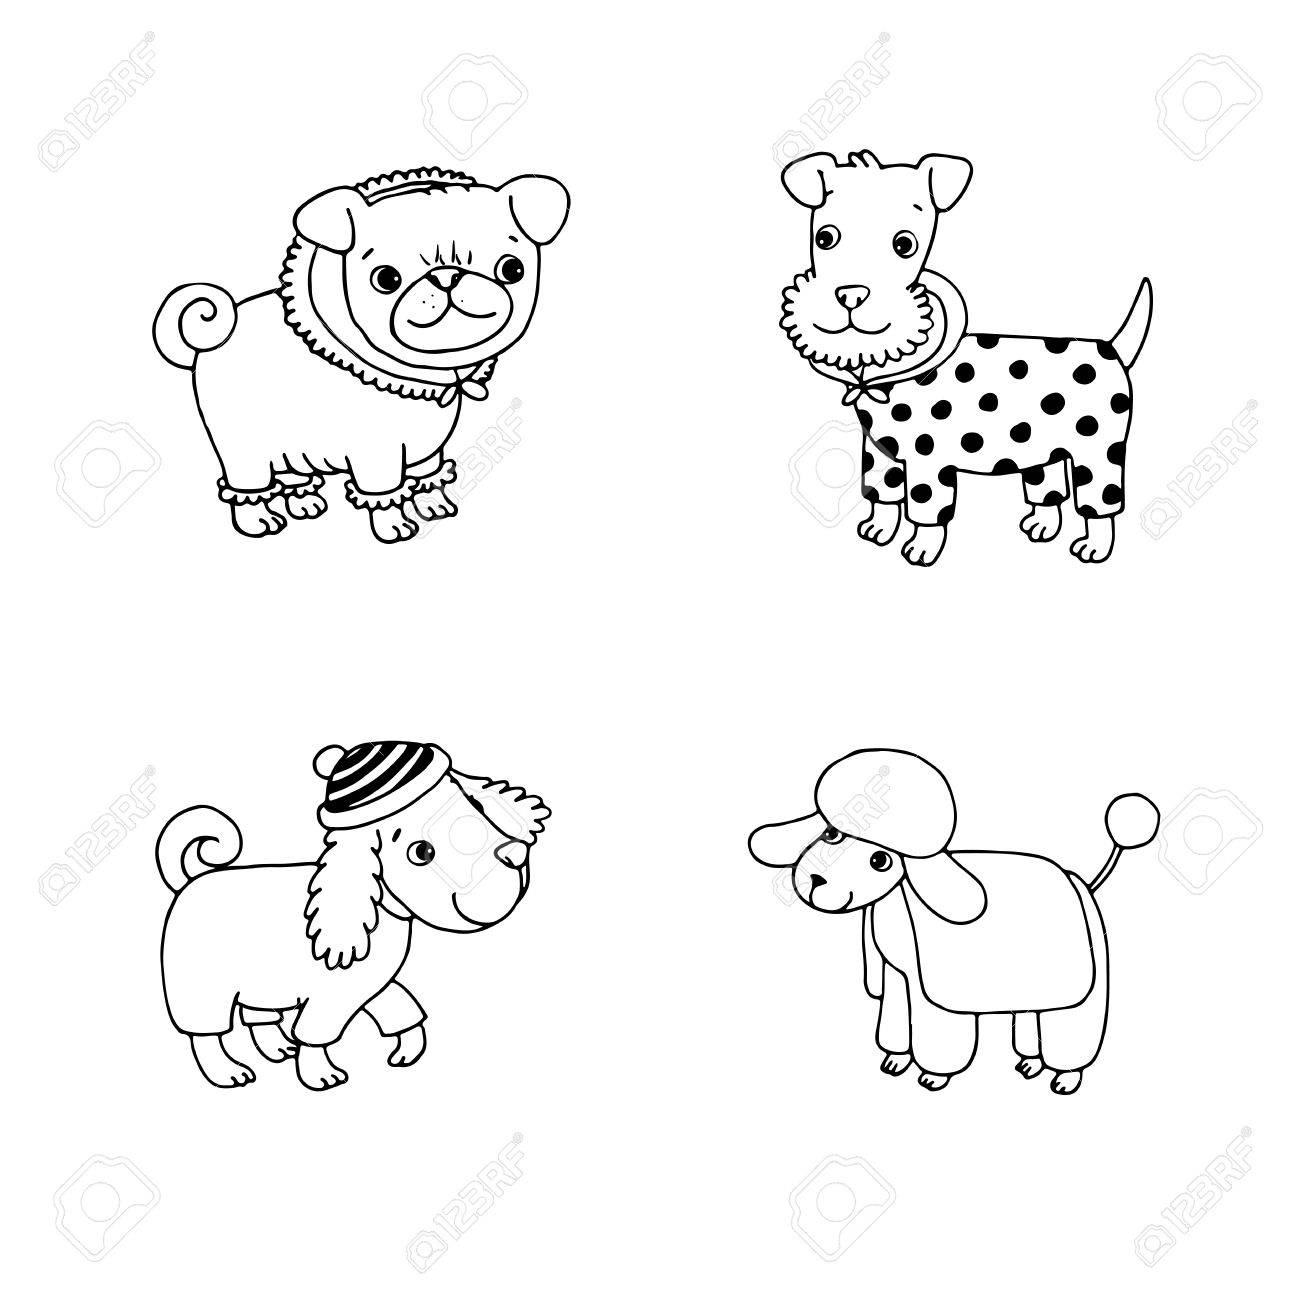 1300x1300 Cute Cartoon Dogs In Winter Clothes. Pug, Terrier, Poodle, Setter